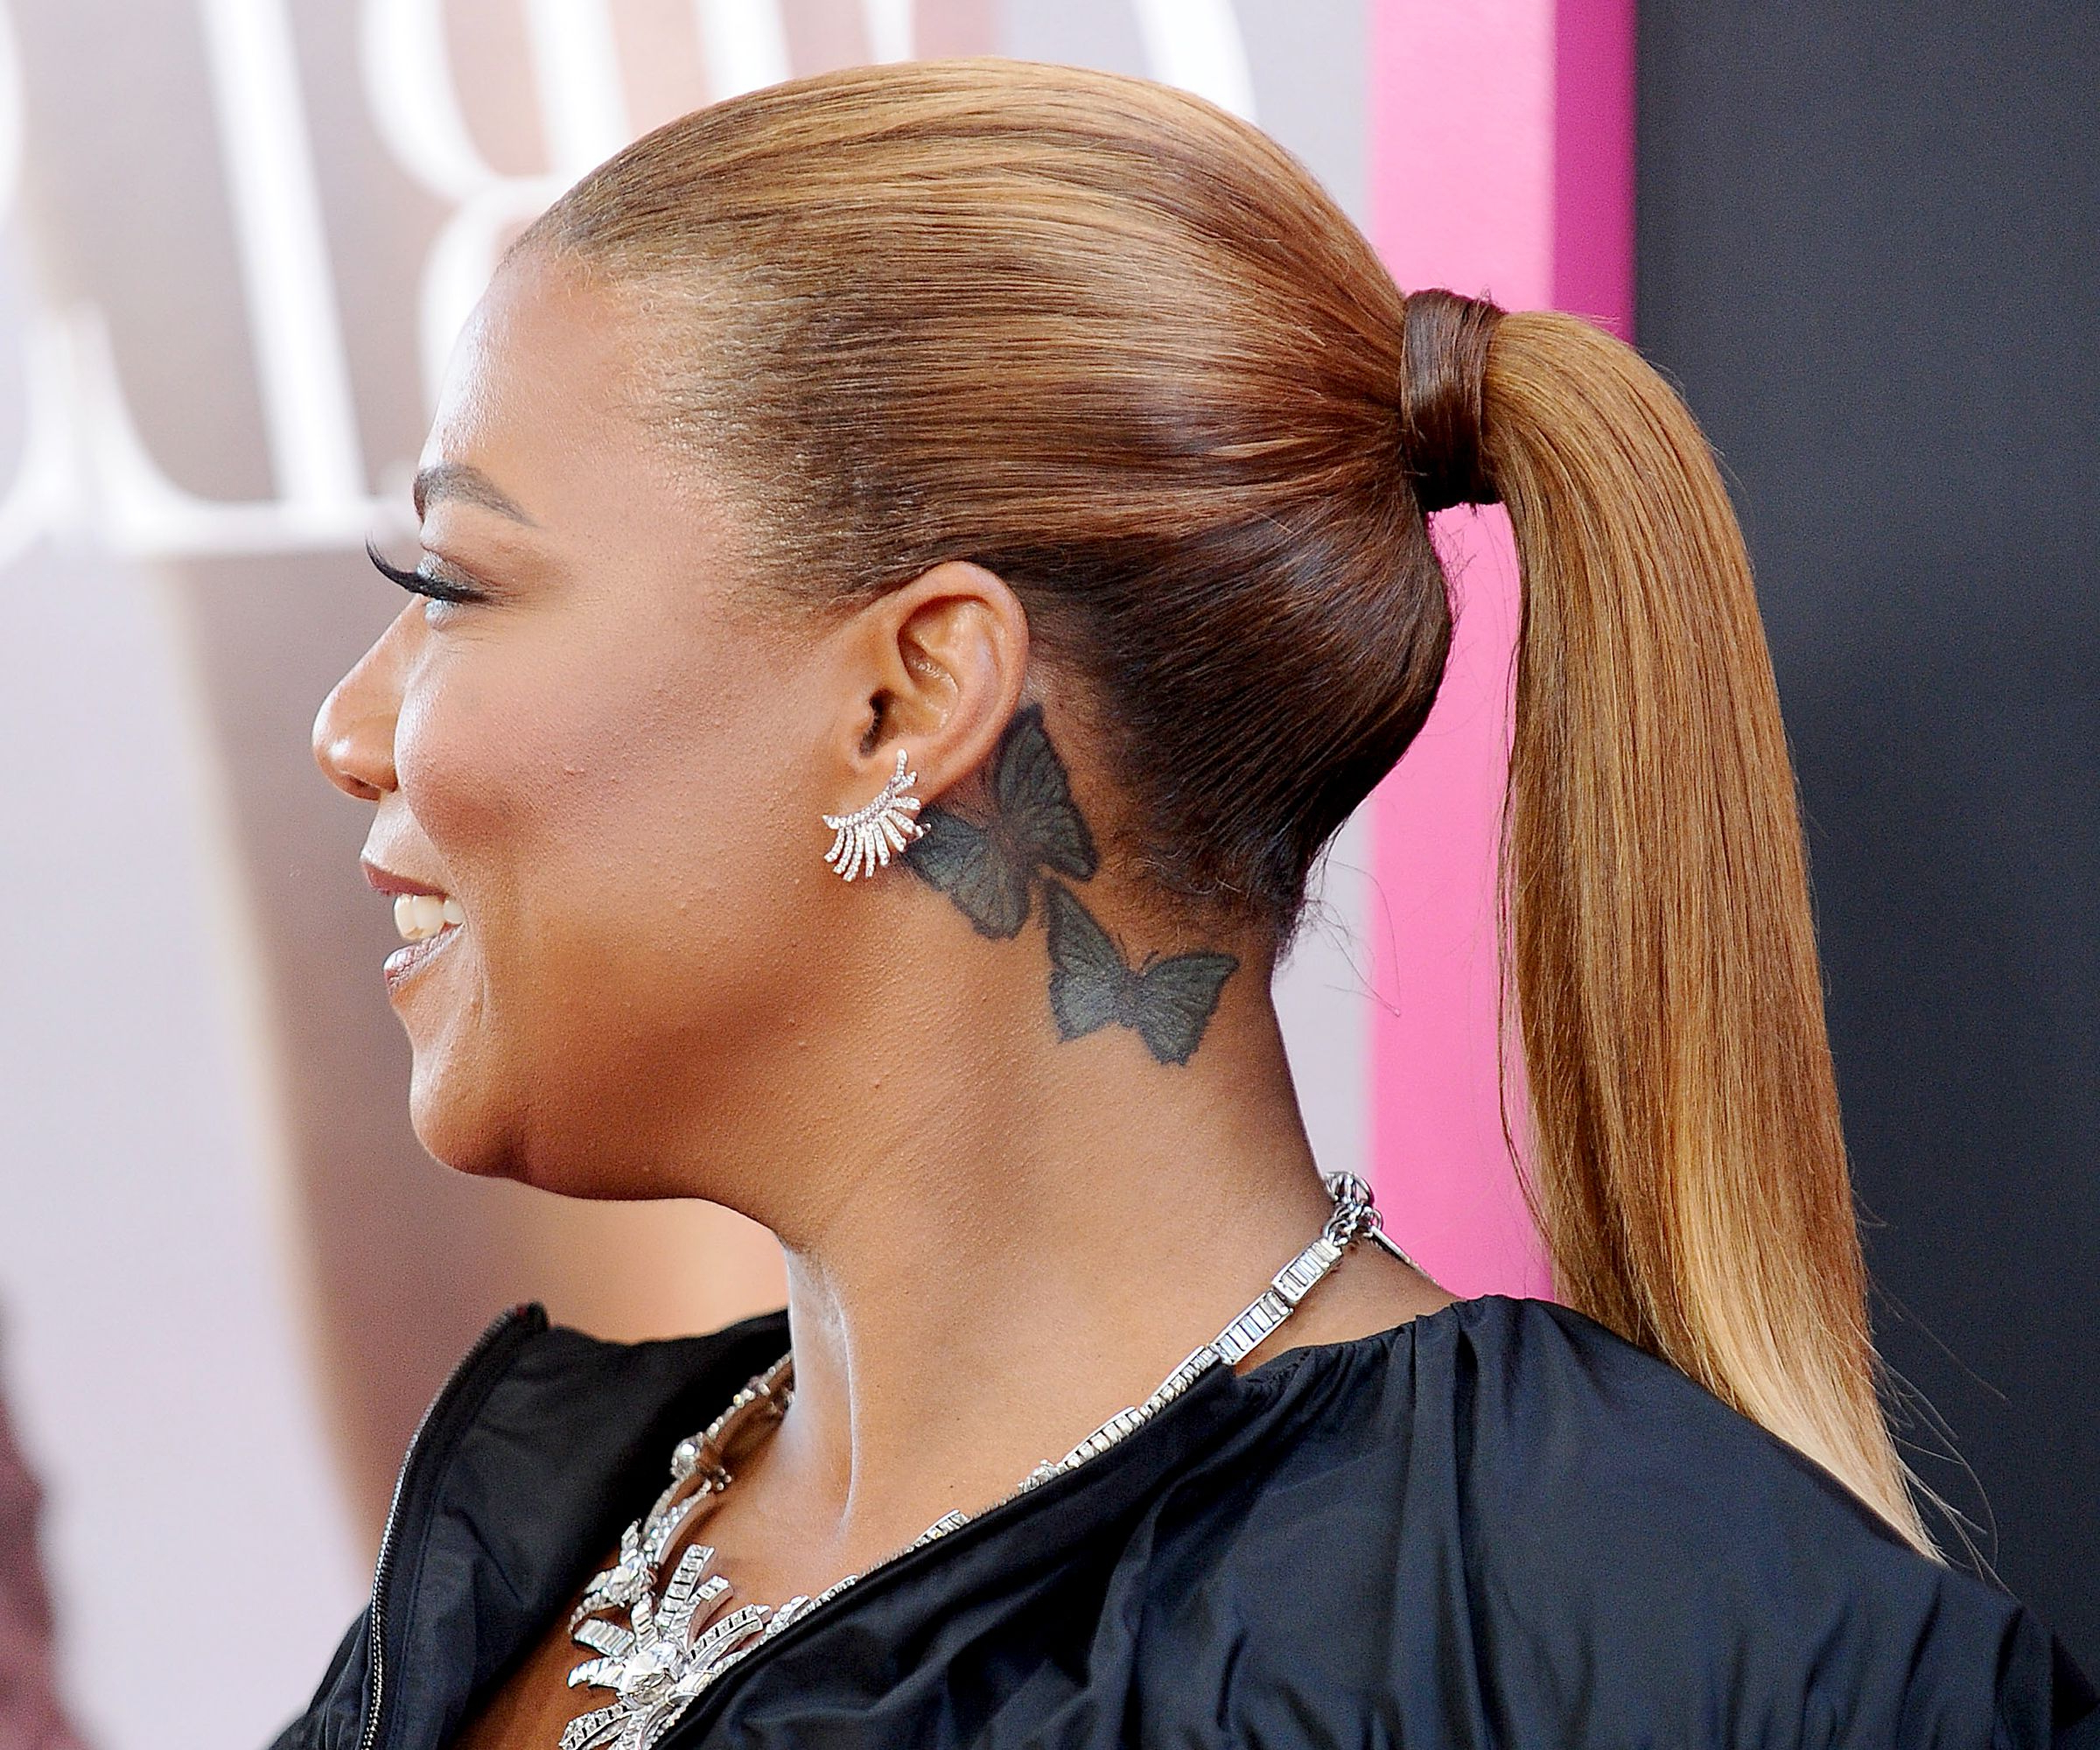 Celebs Bringing Back The Hair Wrapped Ponytail Trend Regarding Newest Wrapped Ponytail Hairstyles (View 3 of 20)